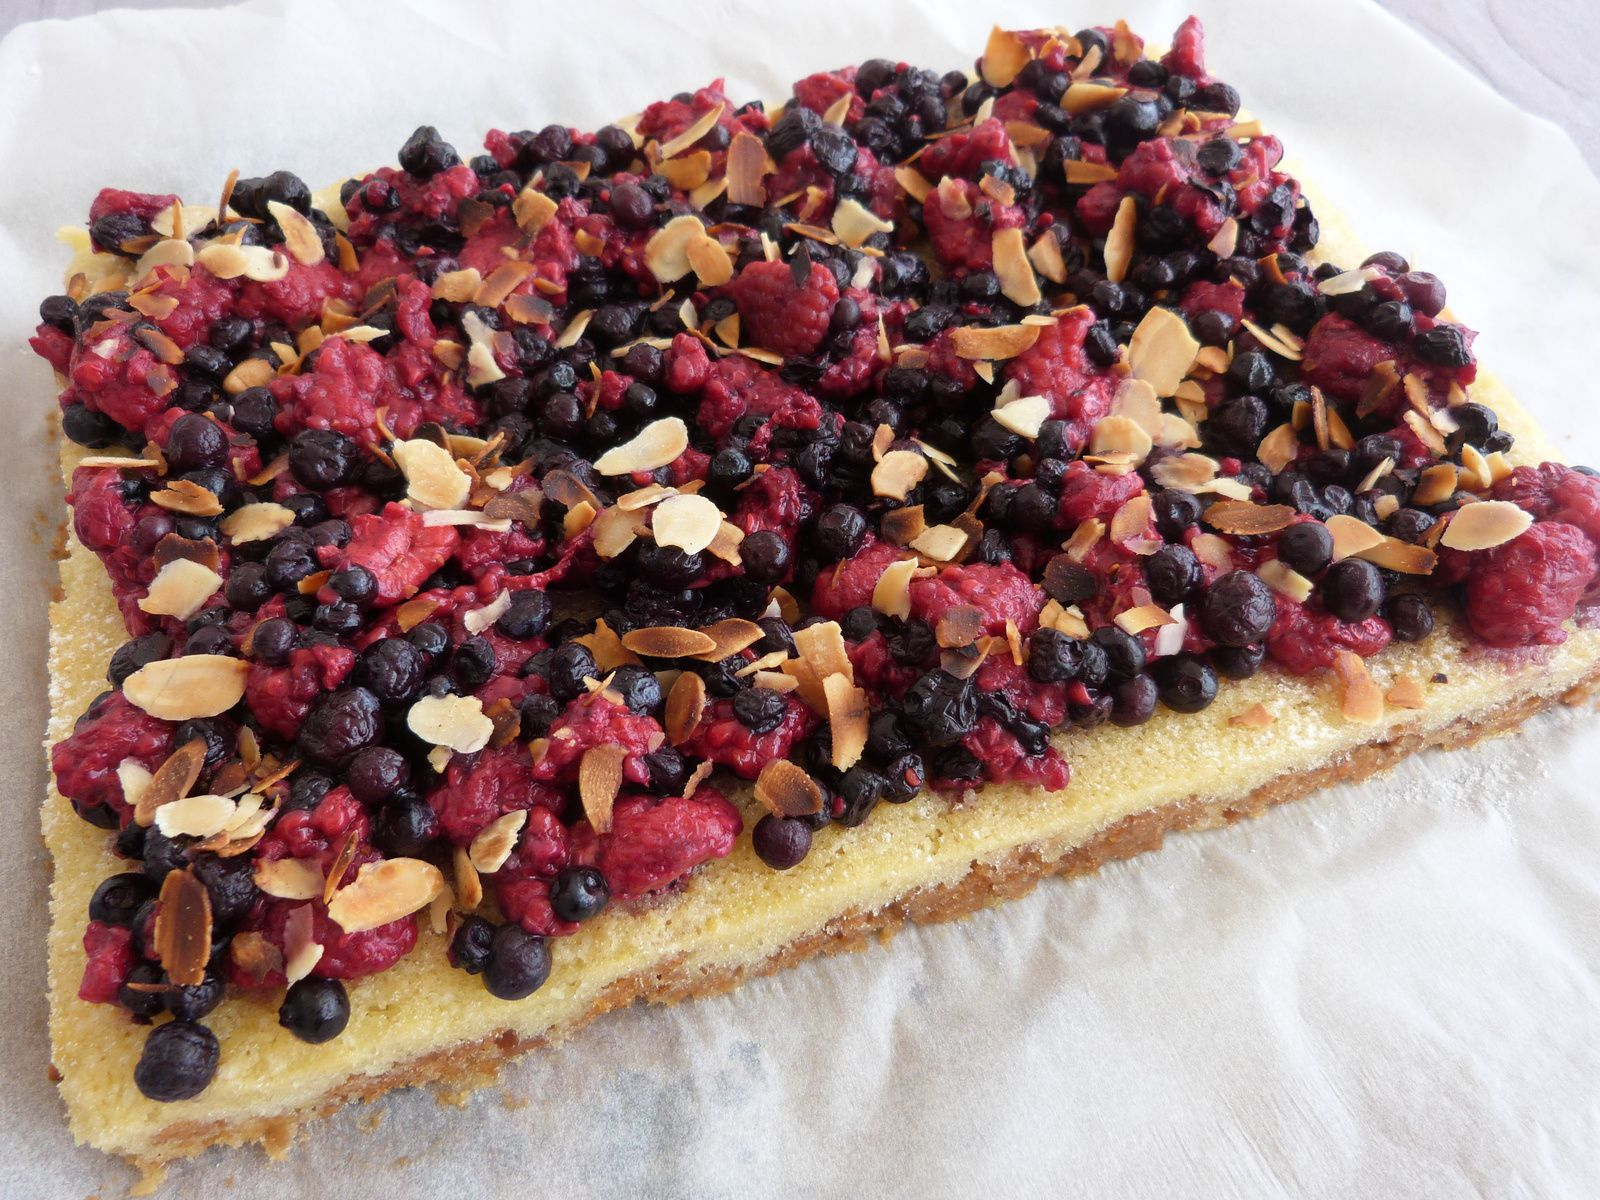 Tarte aux Fruits Rouges Almond Cream - Les Voyages de Gridelle